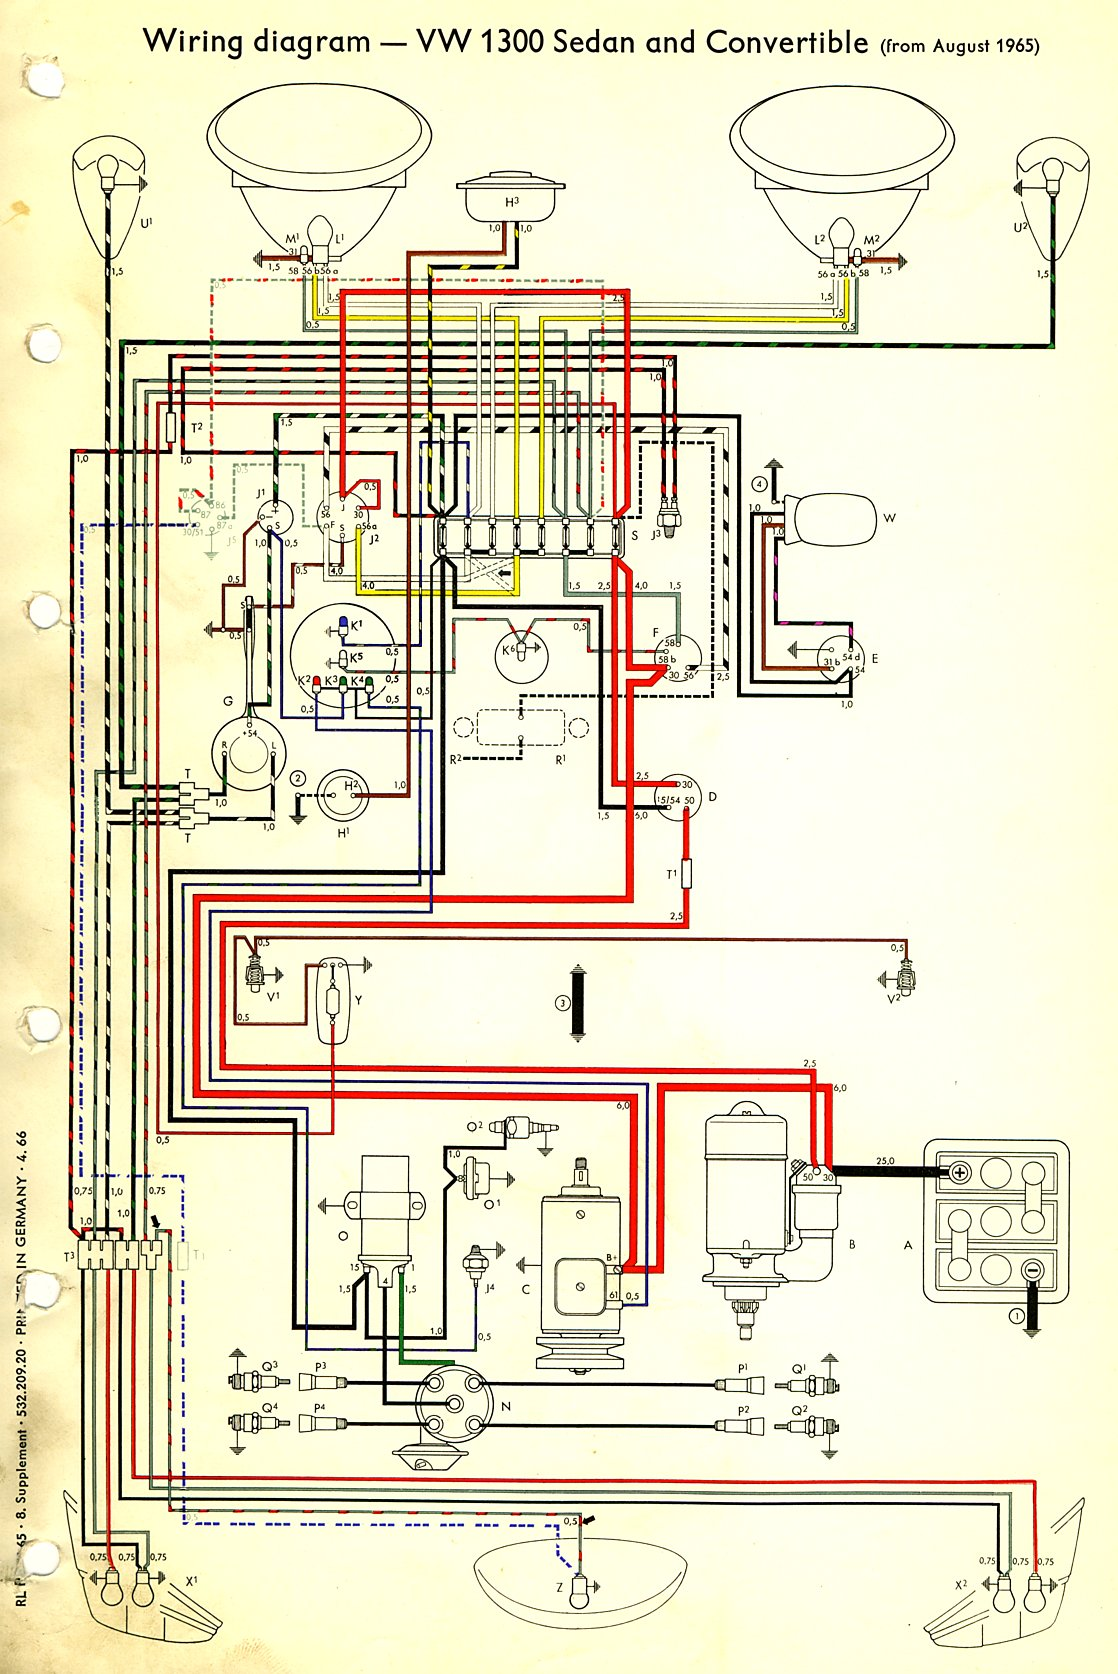 vw bus fuse box diagram wiring diagrams hubs 2001 Volkswagen Beetle Wiring Diagram 1960 vw bus wiring diagram wiring diagram 71 vw bus fuse box 1960 vw bus wiring